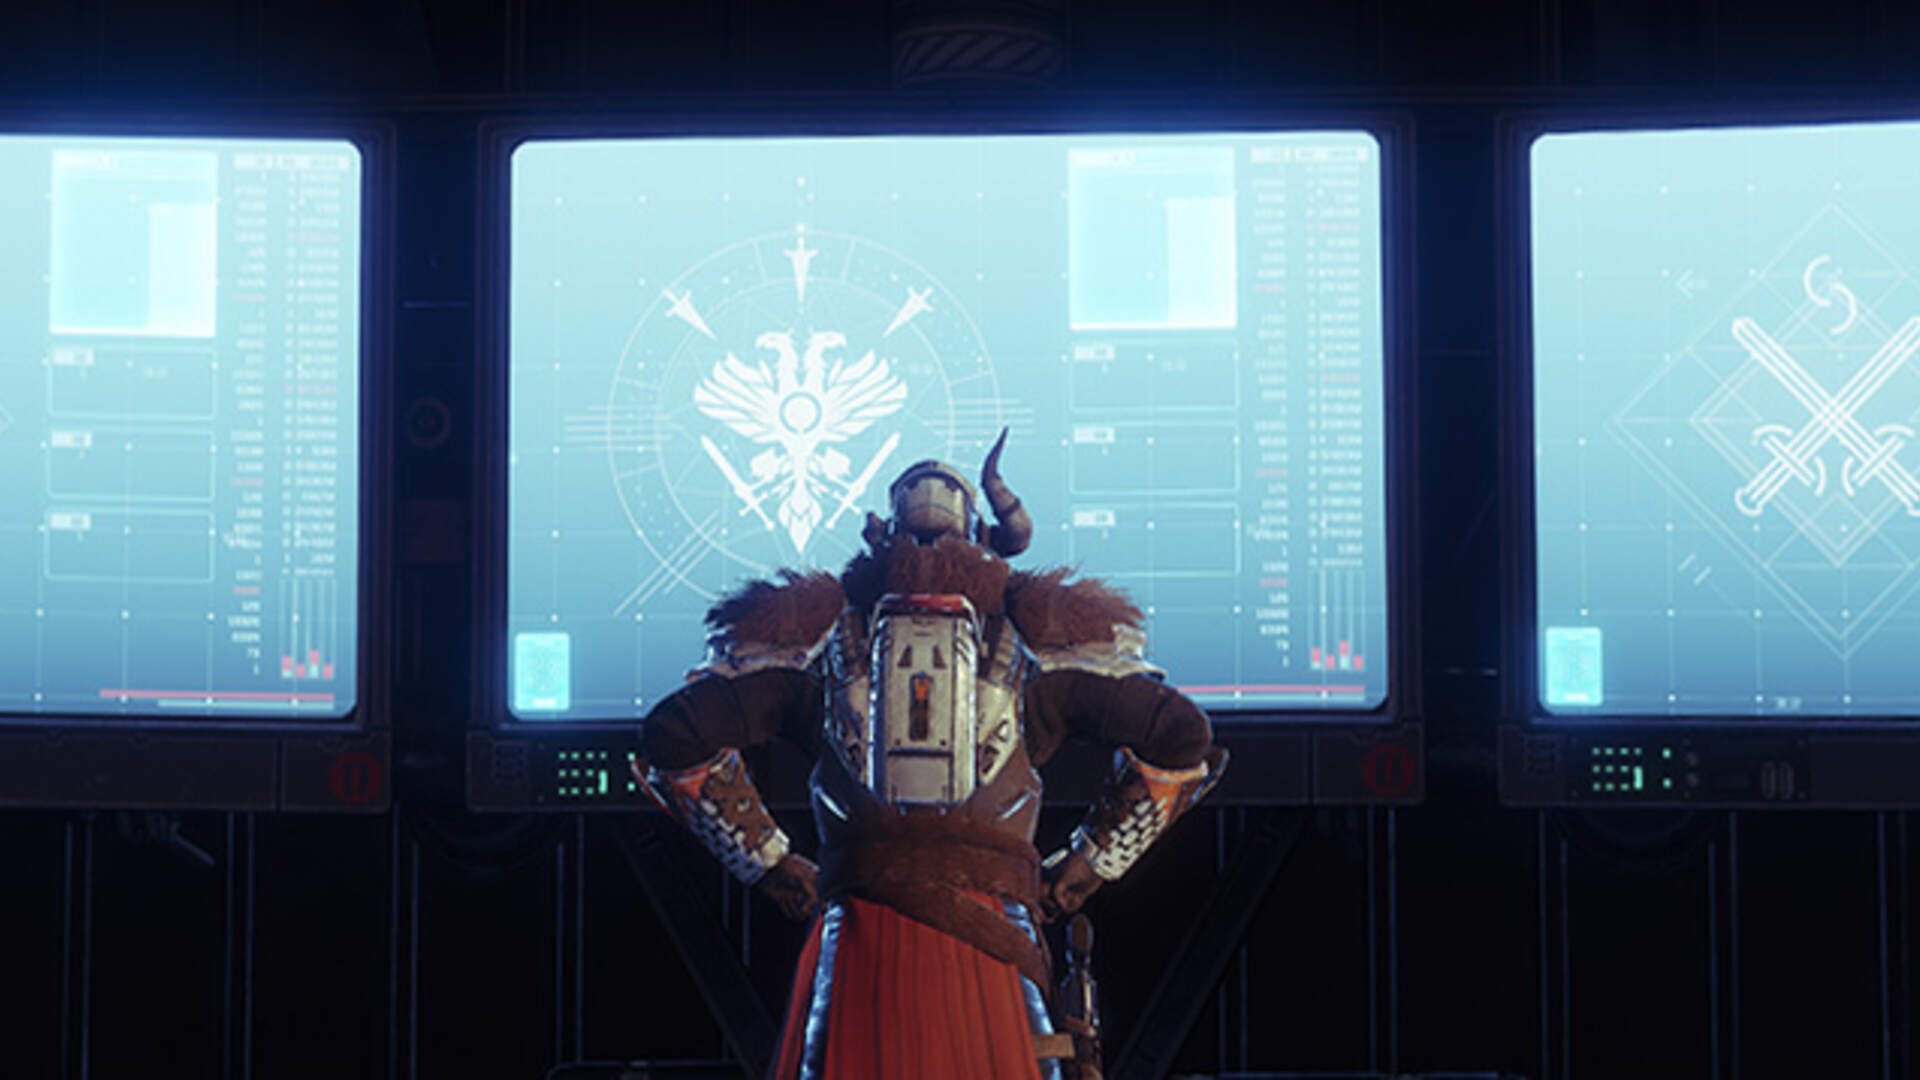 Destiny 2 Update 1.2.3 Detailed, Changes to Faction Rally, Crucible, and New Events Revealed